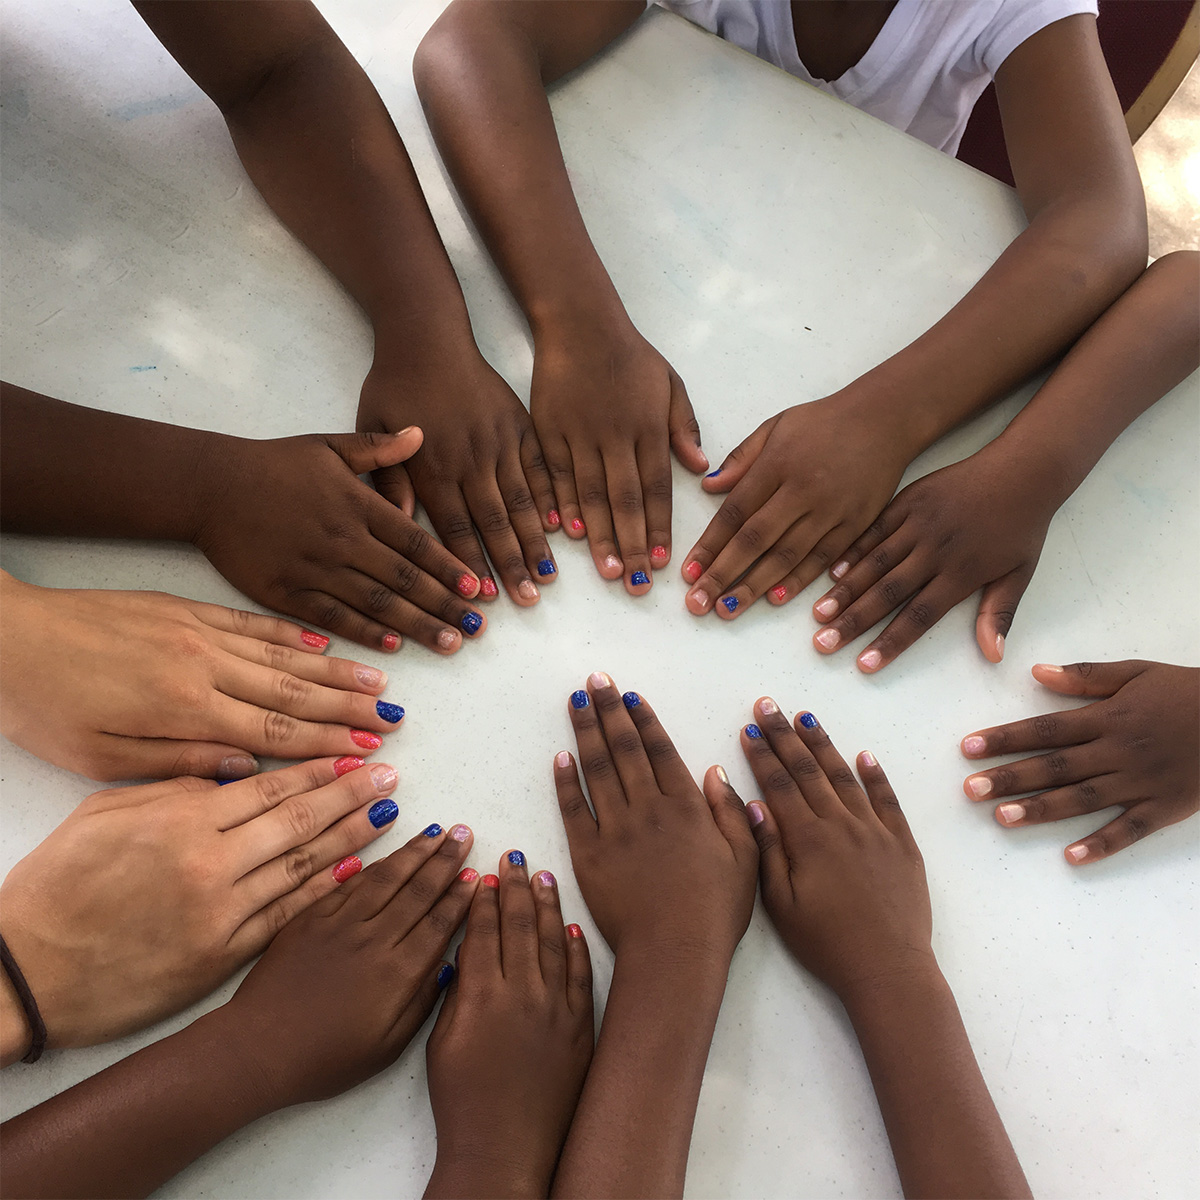 Youth hands